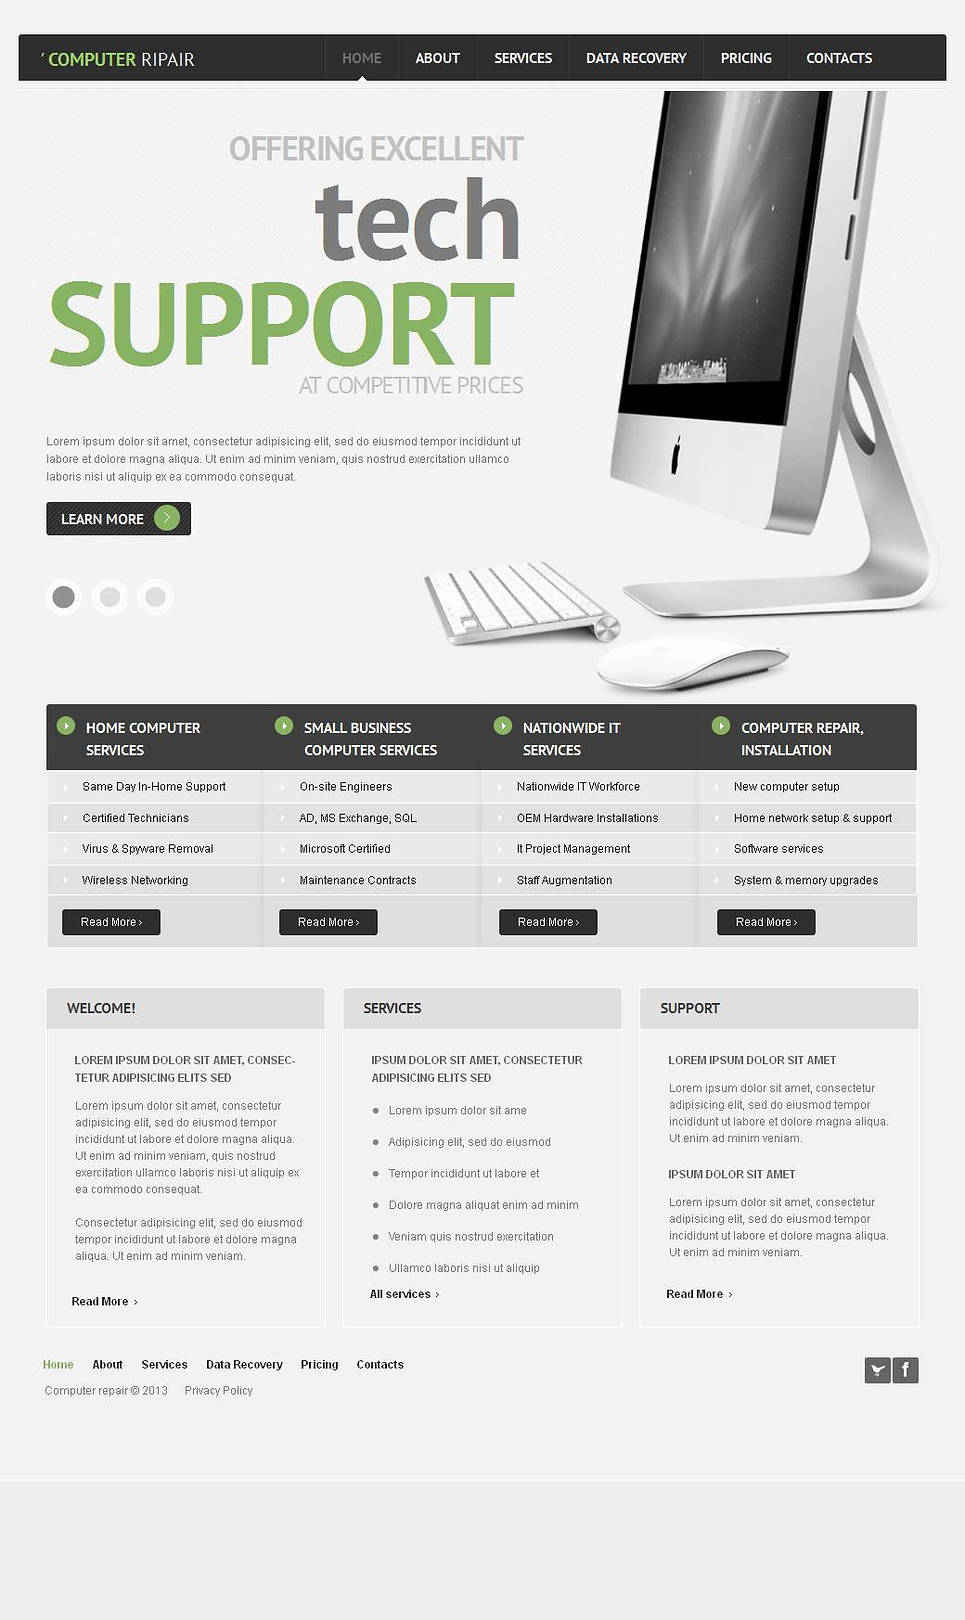 Computer Repair Services Website Template - image